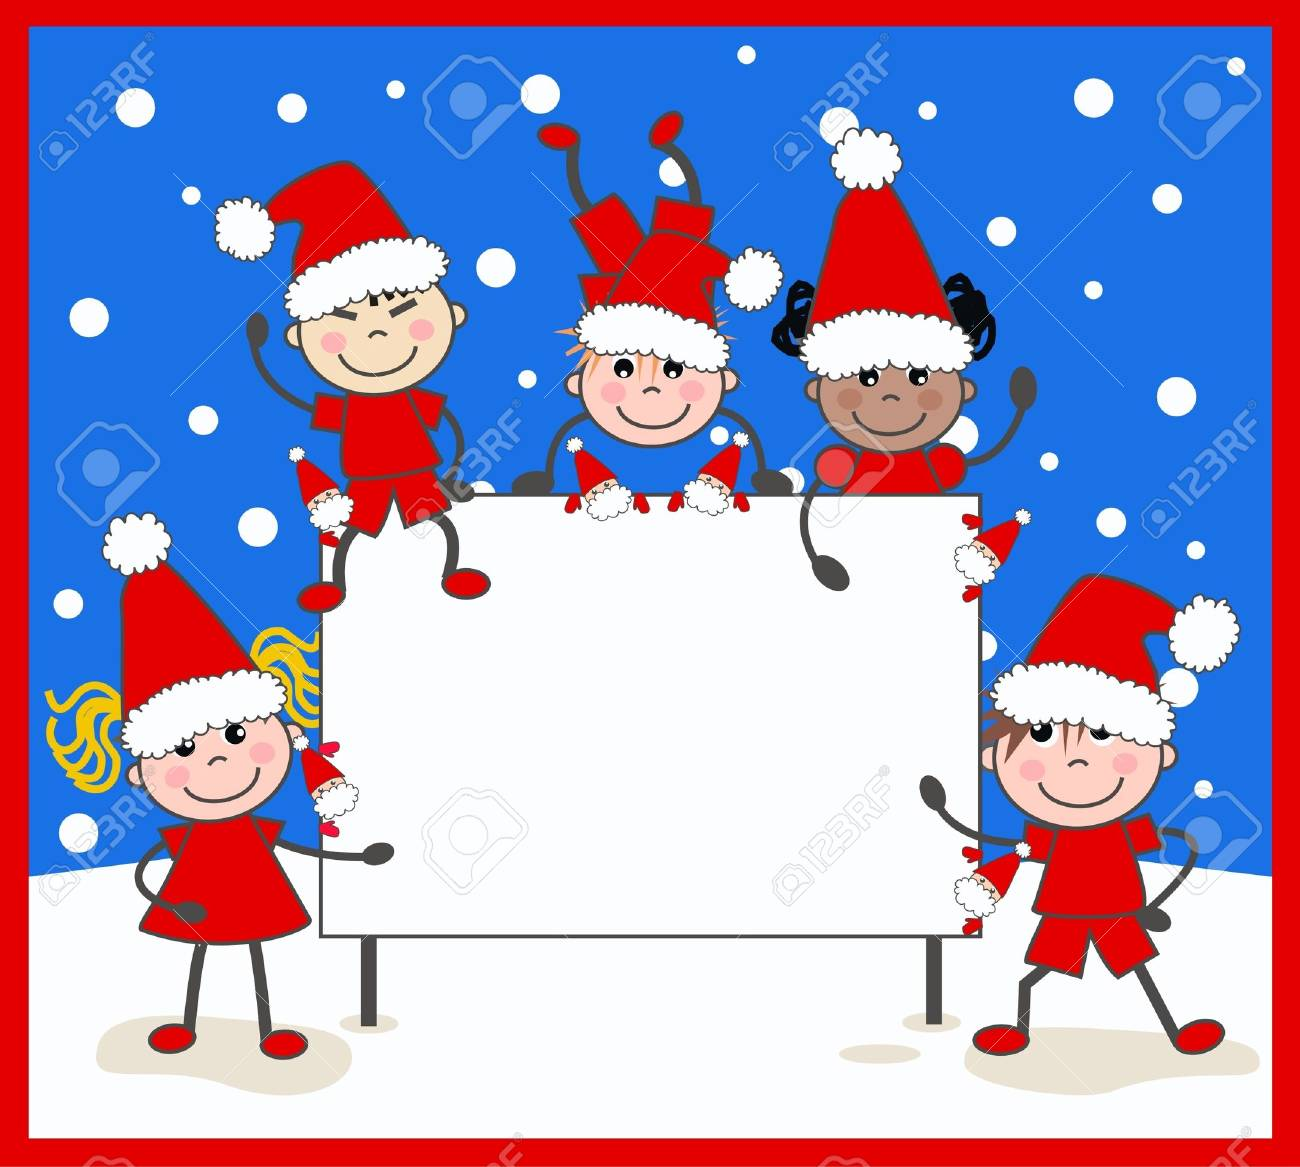 Merry Christmas Royalty Free Cliparts, Vectors, And Stock ...